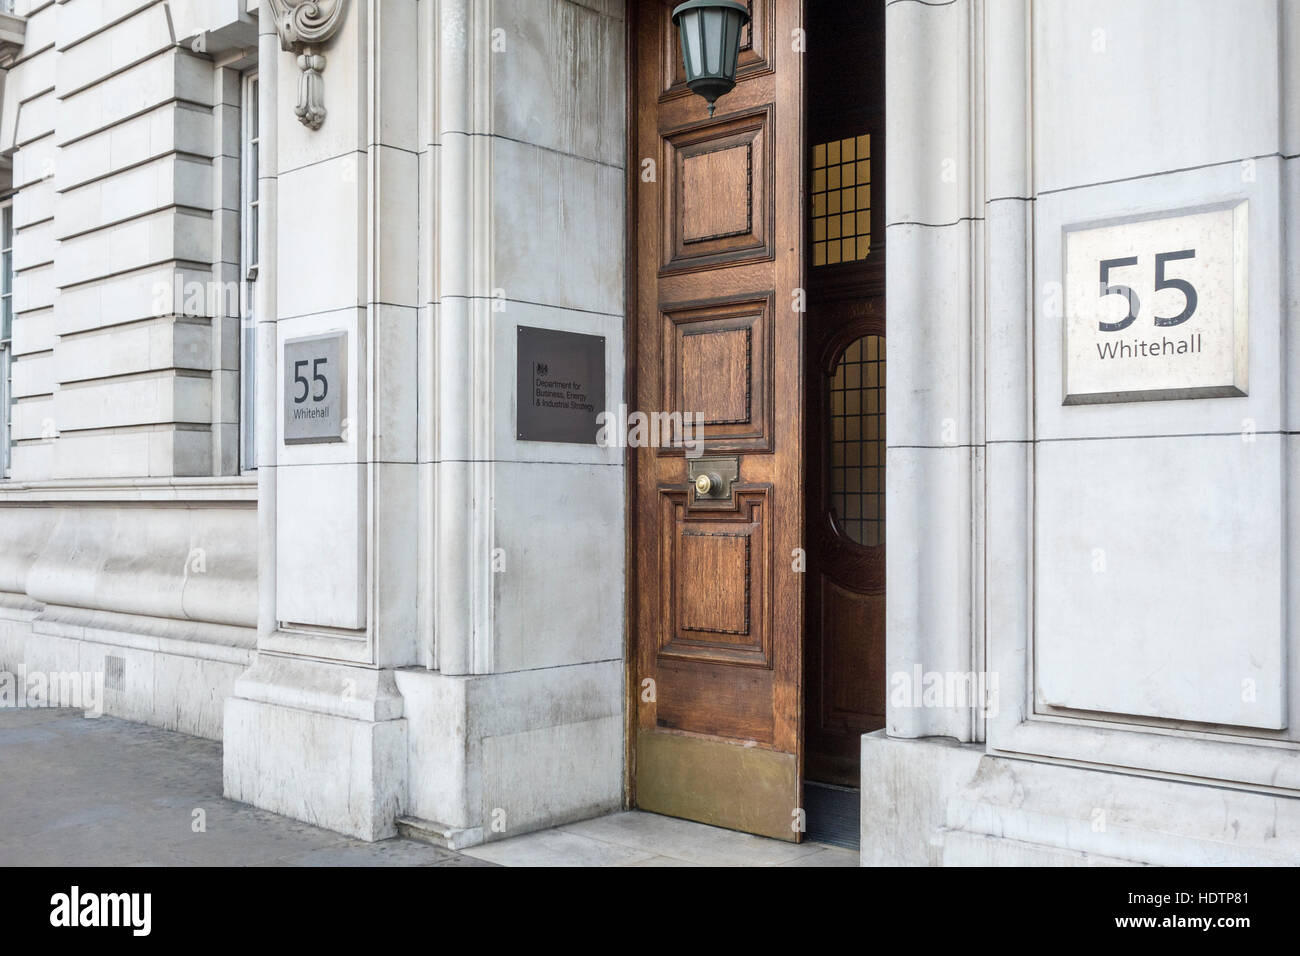 Department for Business Energy & Industrial Strategy, 55 Whitehall, London, UK - Stock Image